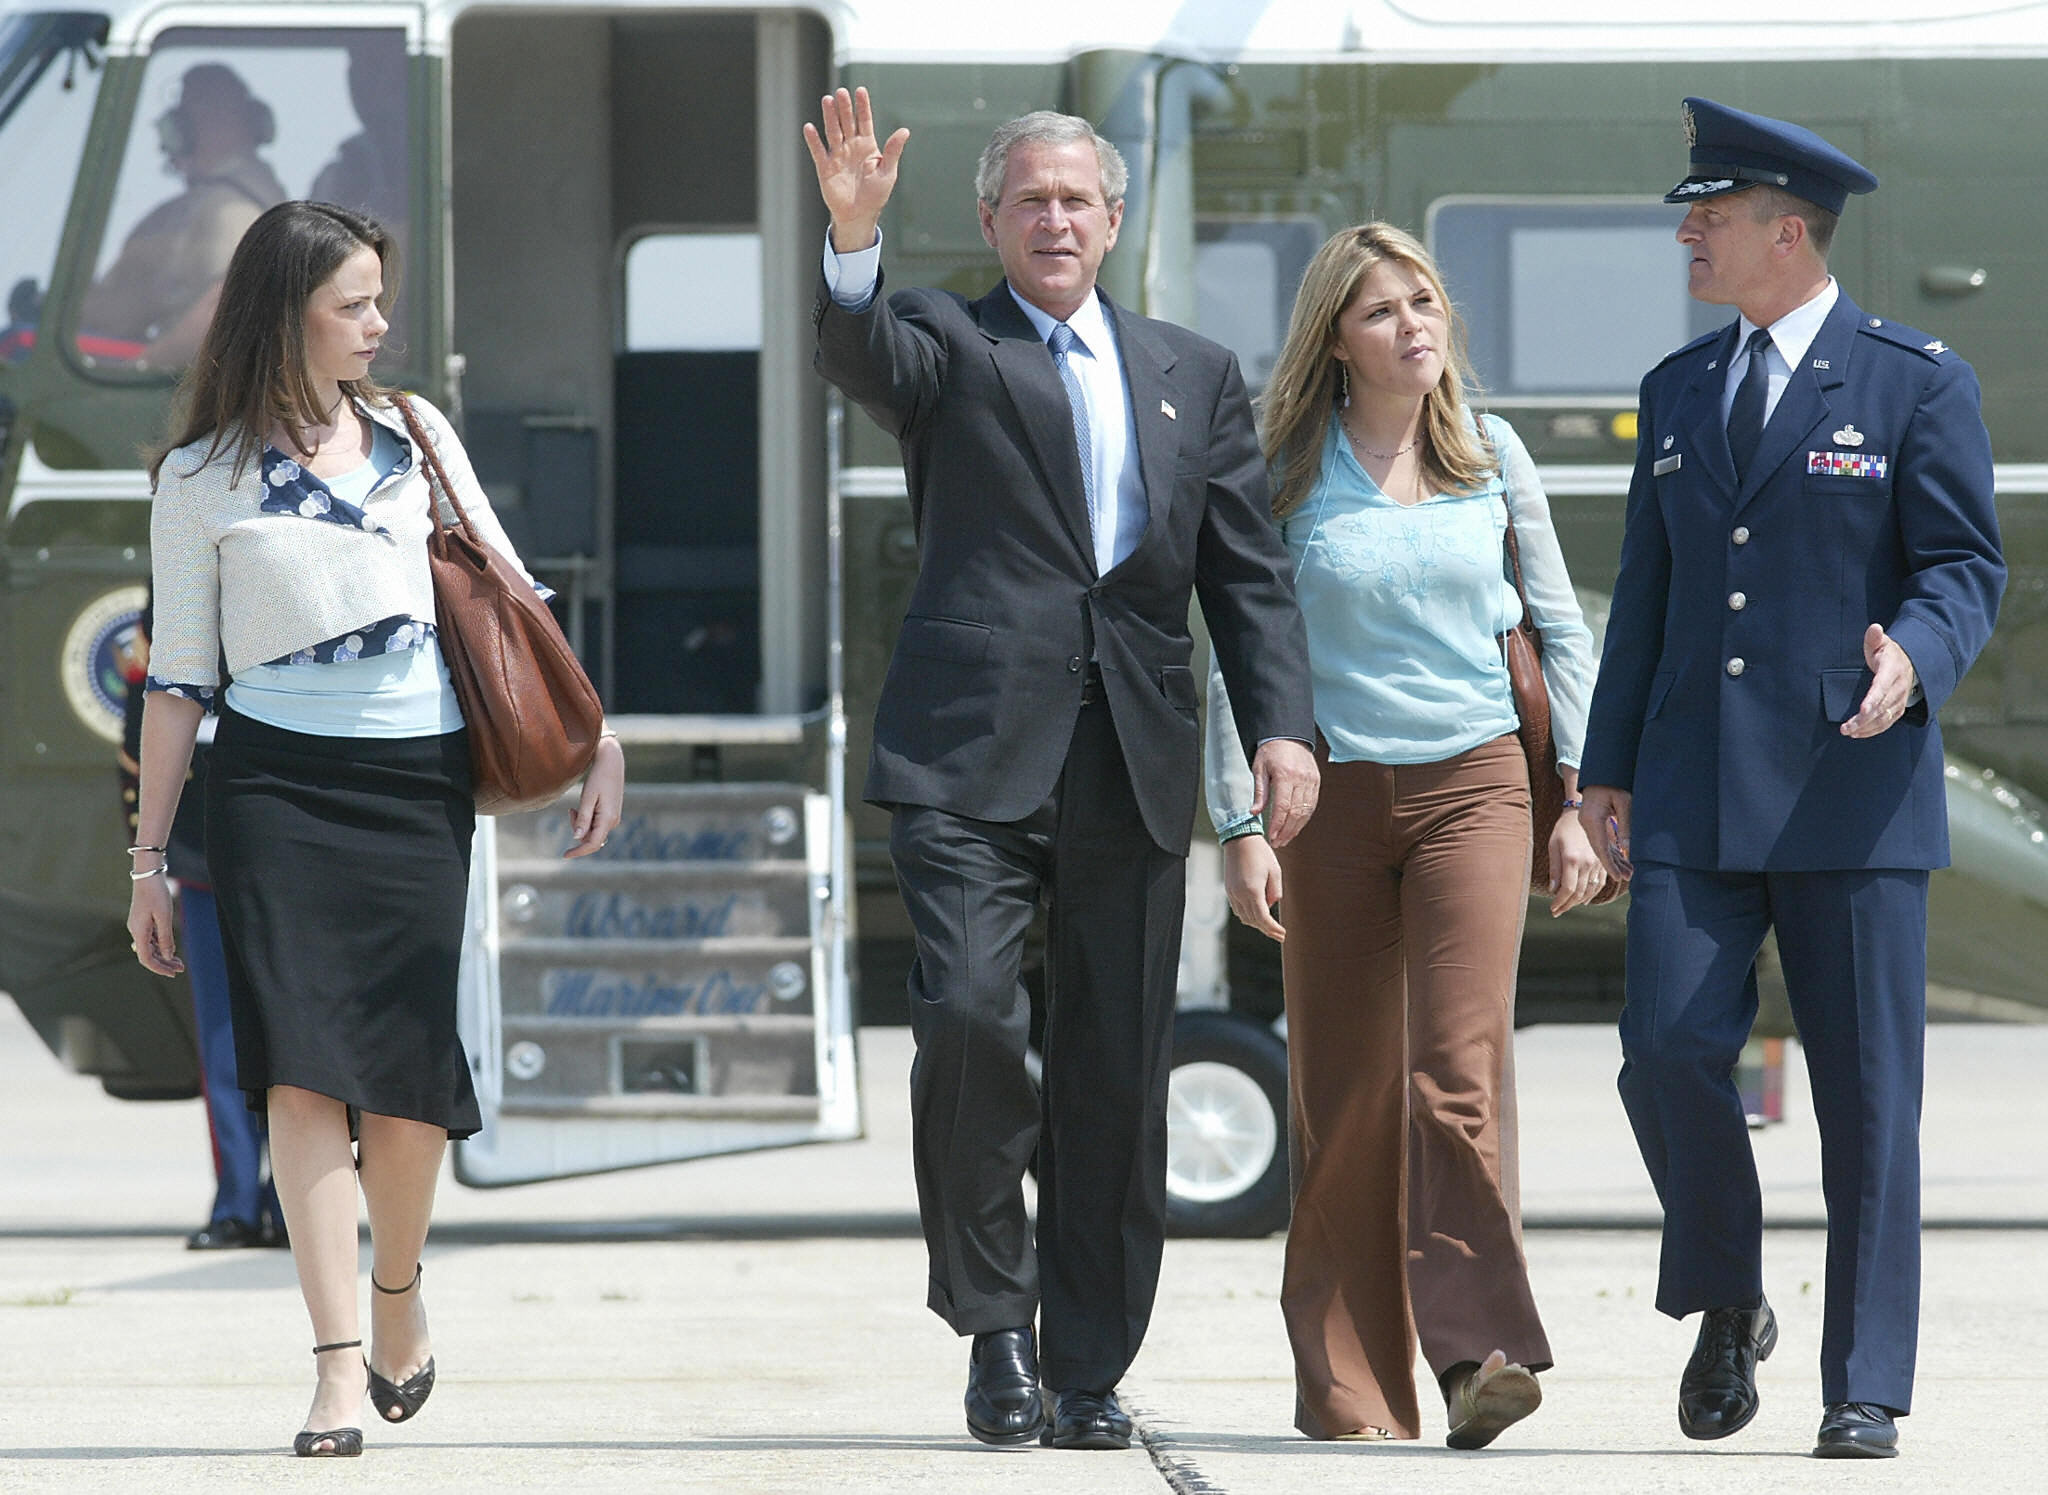 US President George W. Bush (C) walks with his daughters Jenna and Barbara